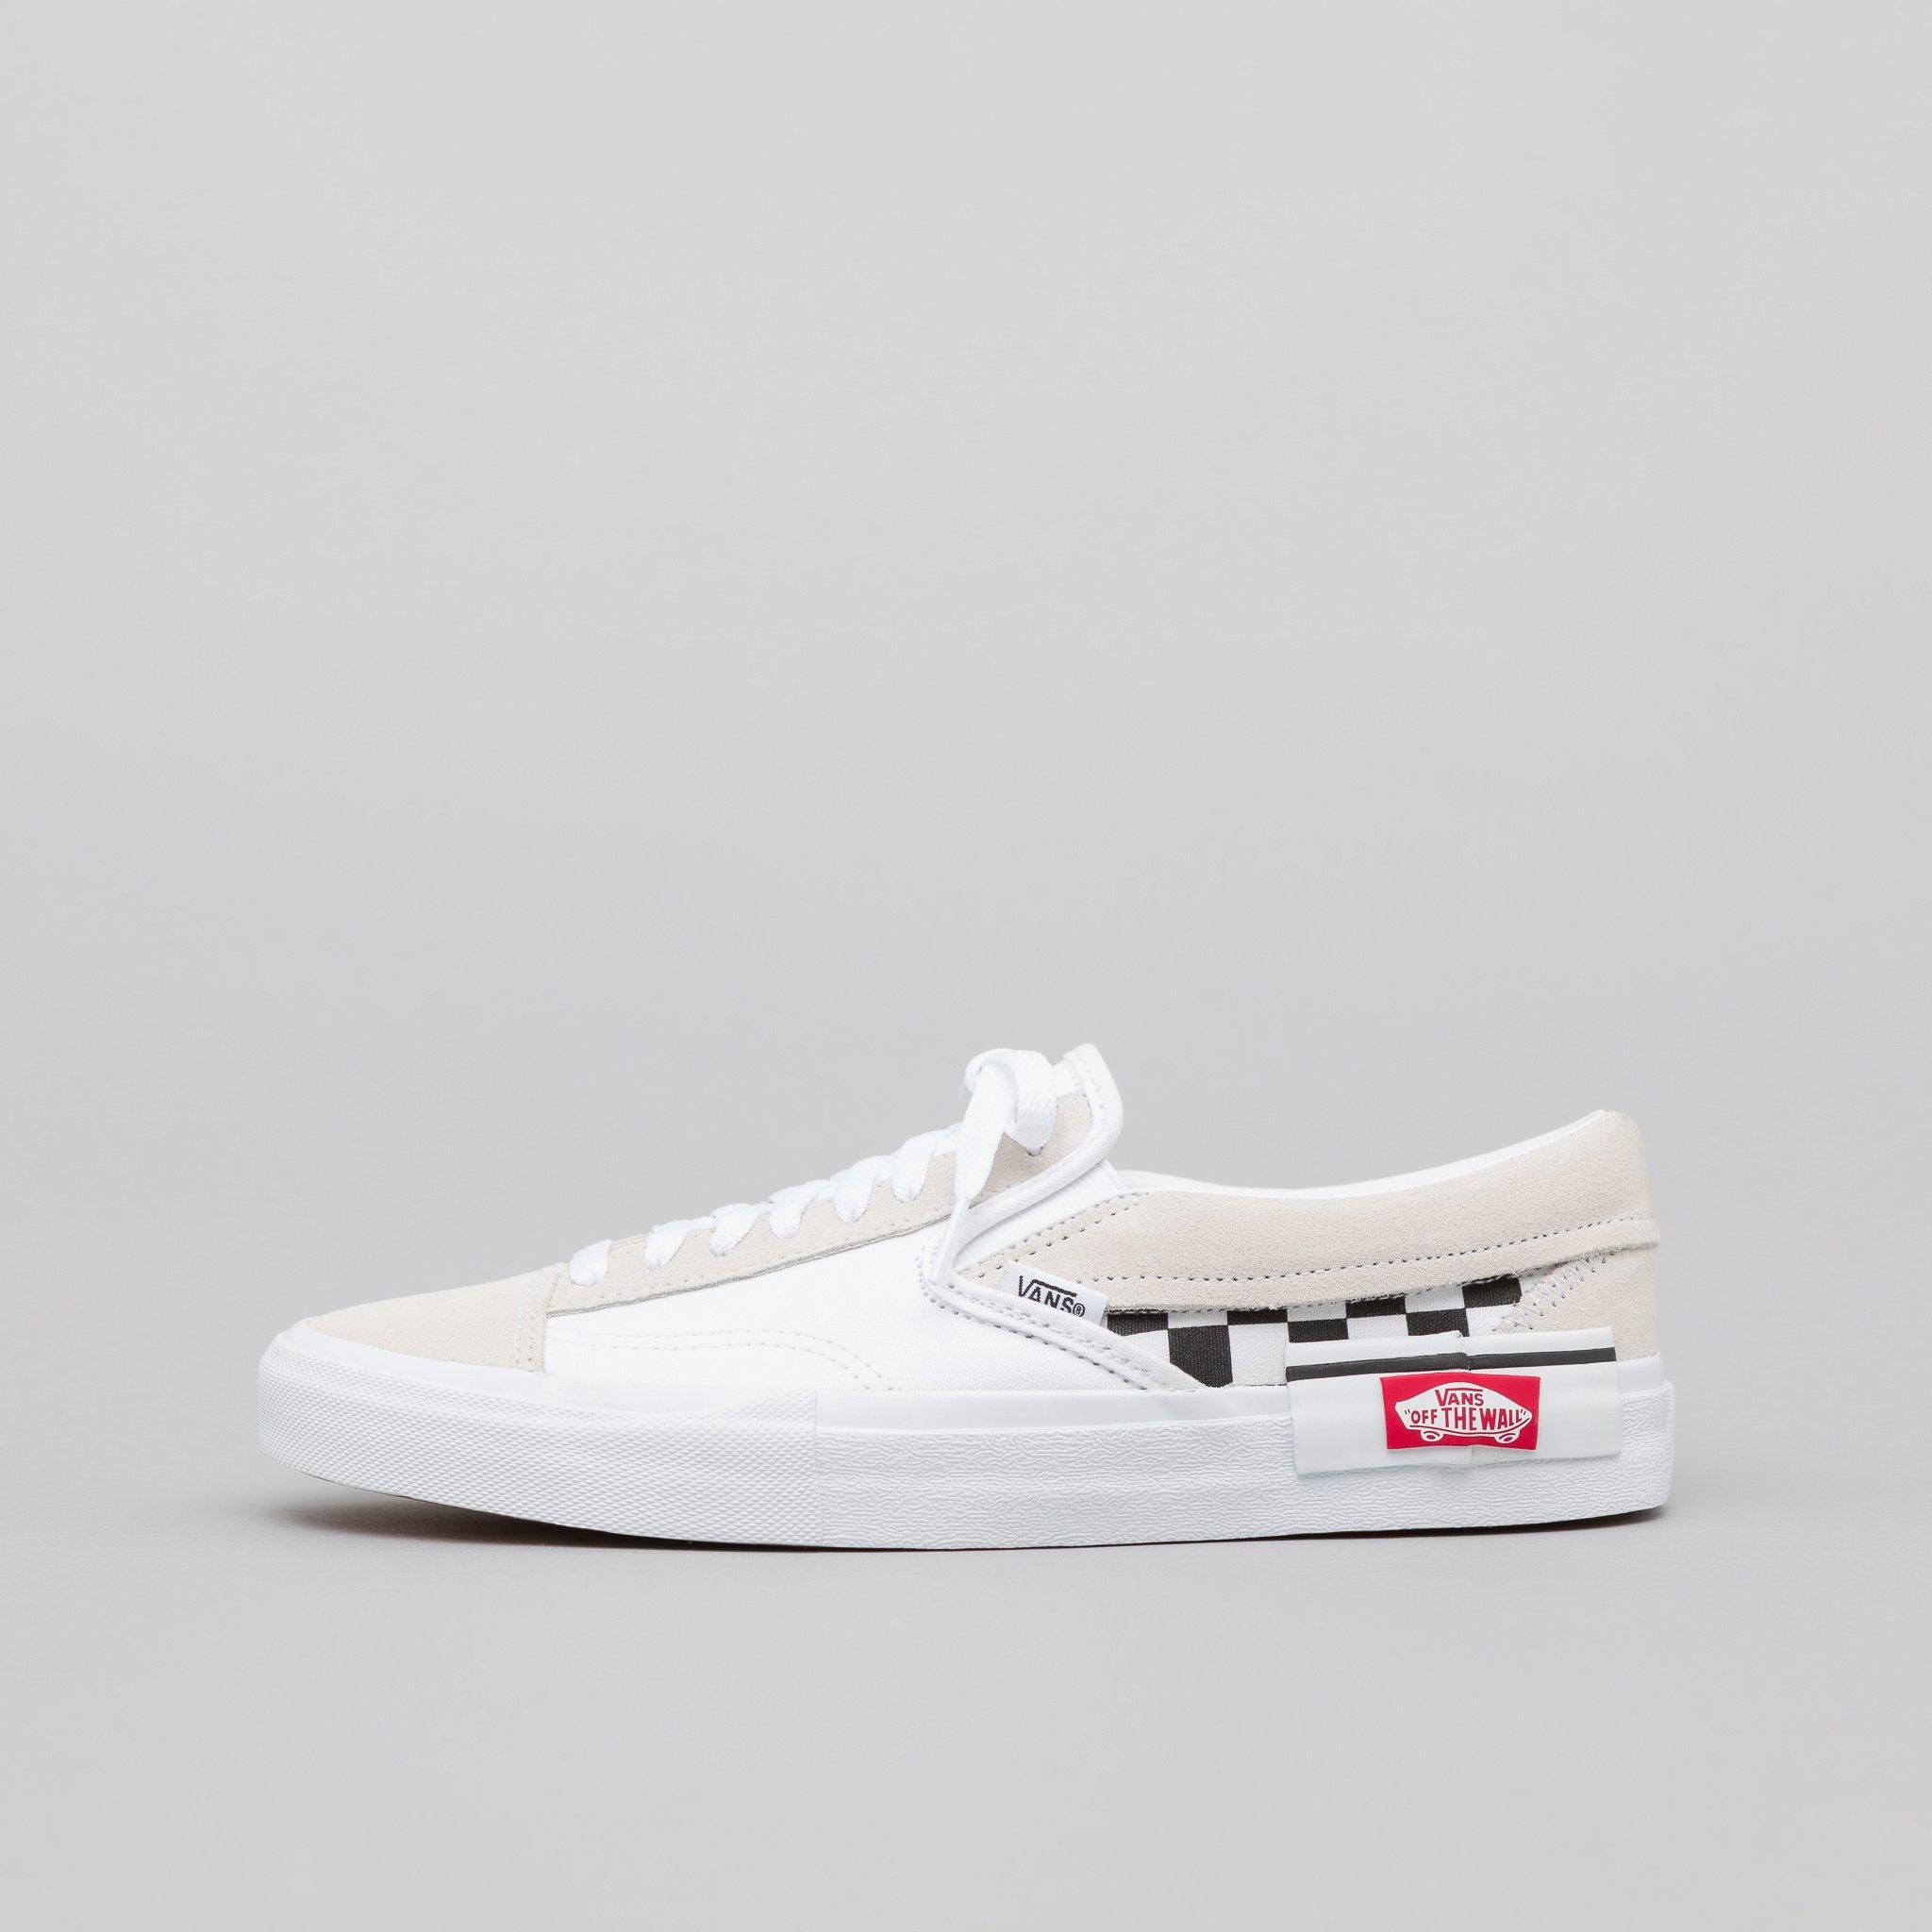 5dd1278c11 Lyst - Vans Slip-on Cap Checkerboard In True White black in White ...